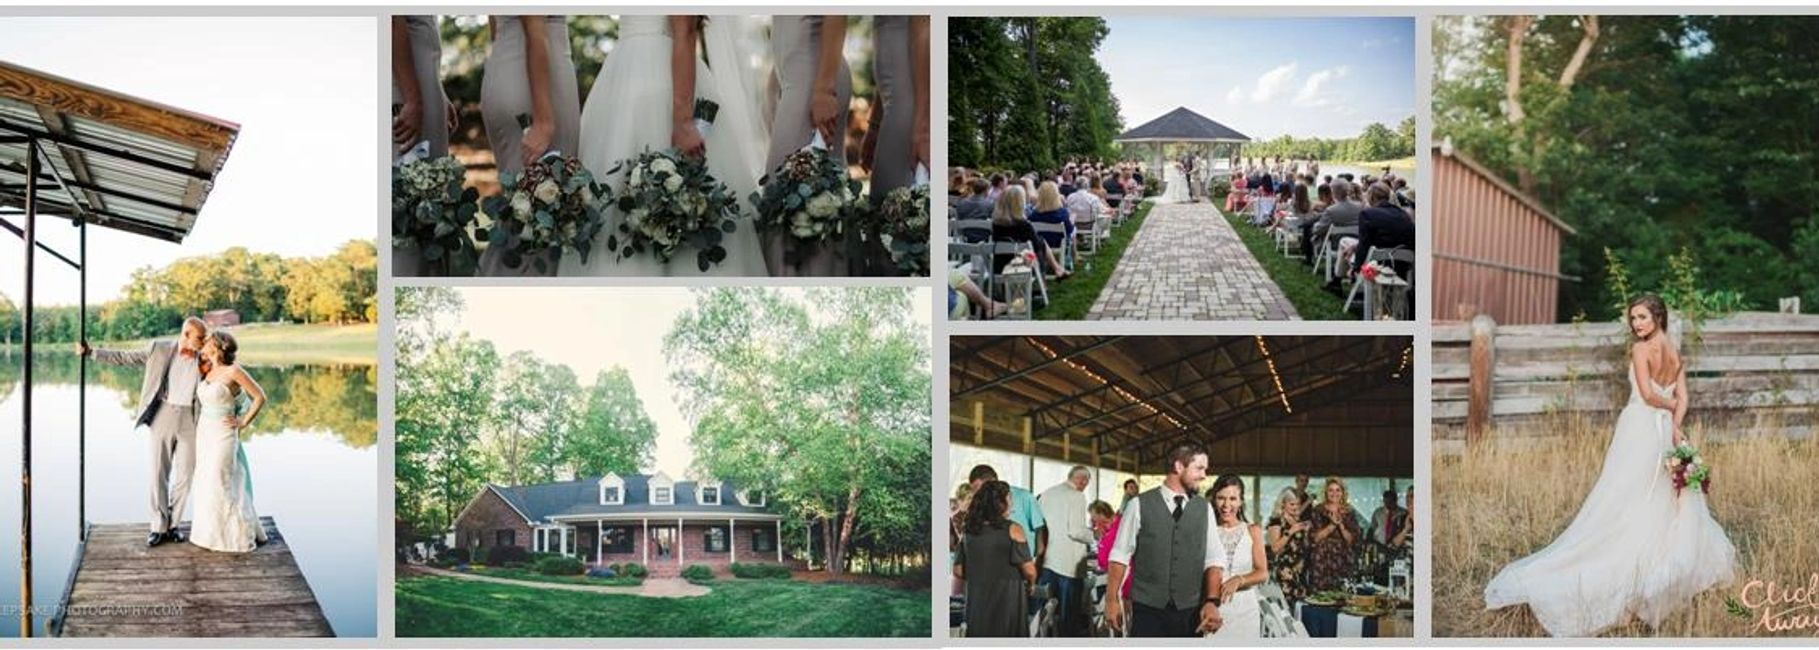 The Oaks Events, Midland, NC